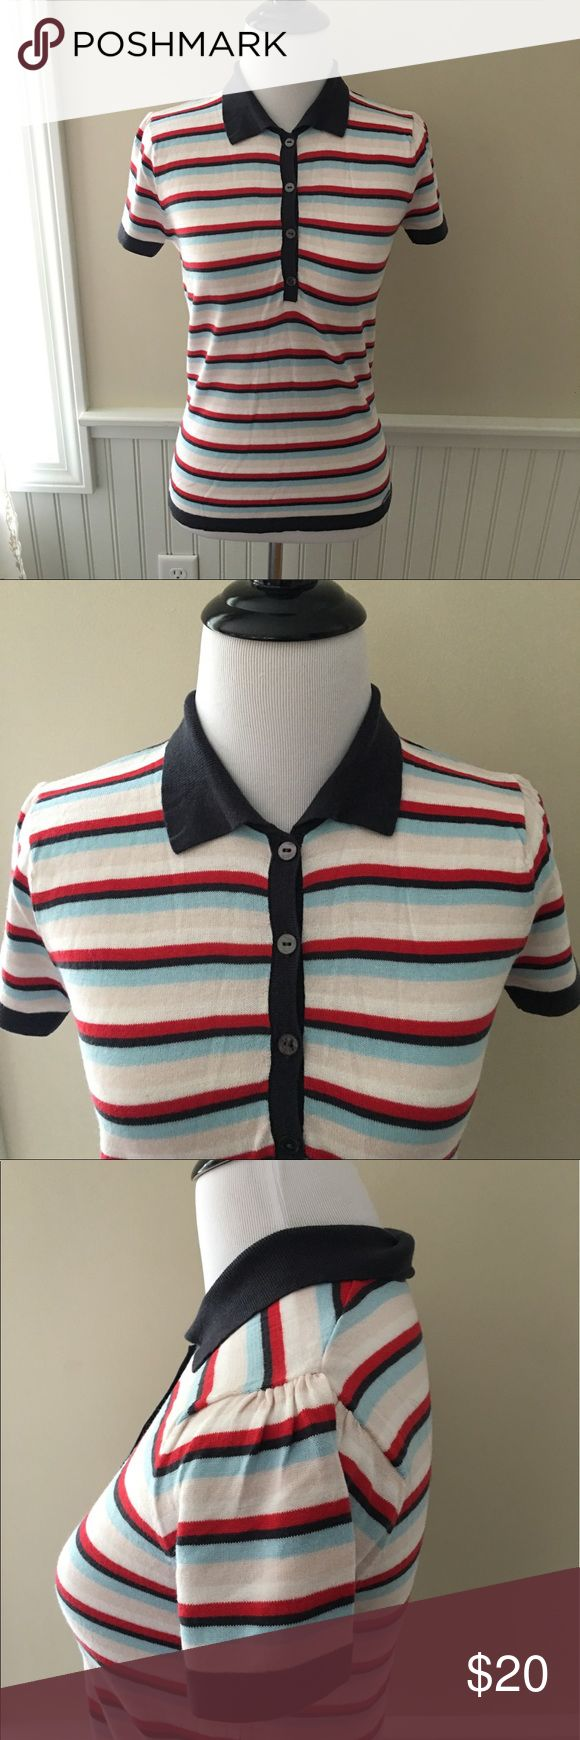 "Ben Sherman Retro Striped Polo Sweater Ben Sherman super retro striped knit collared top. Buttons up the front. Thin Knit. Very soft.  Size Small 16"" across at bust  23"" long . Ben Sherman Tops"